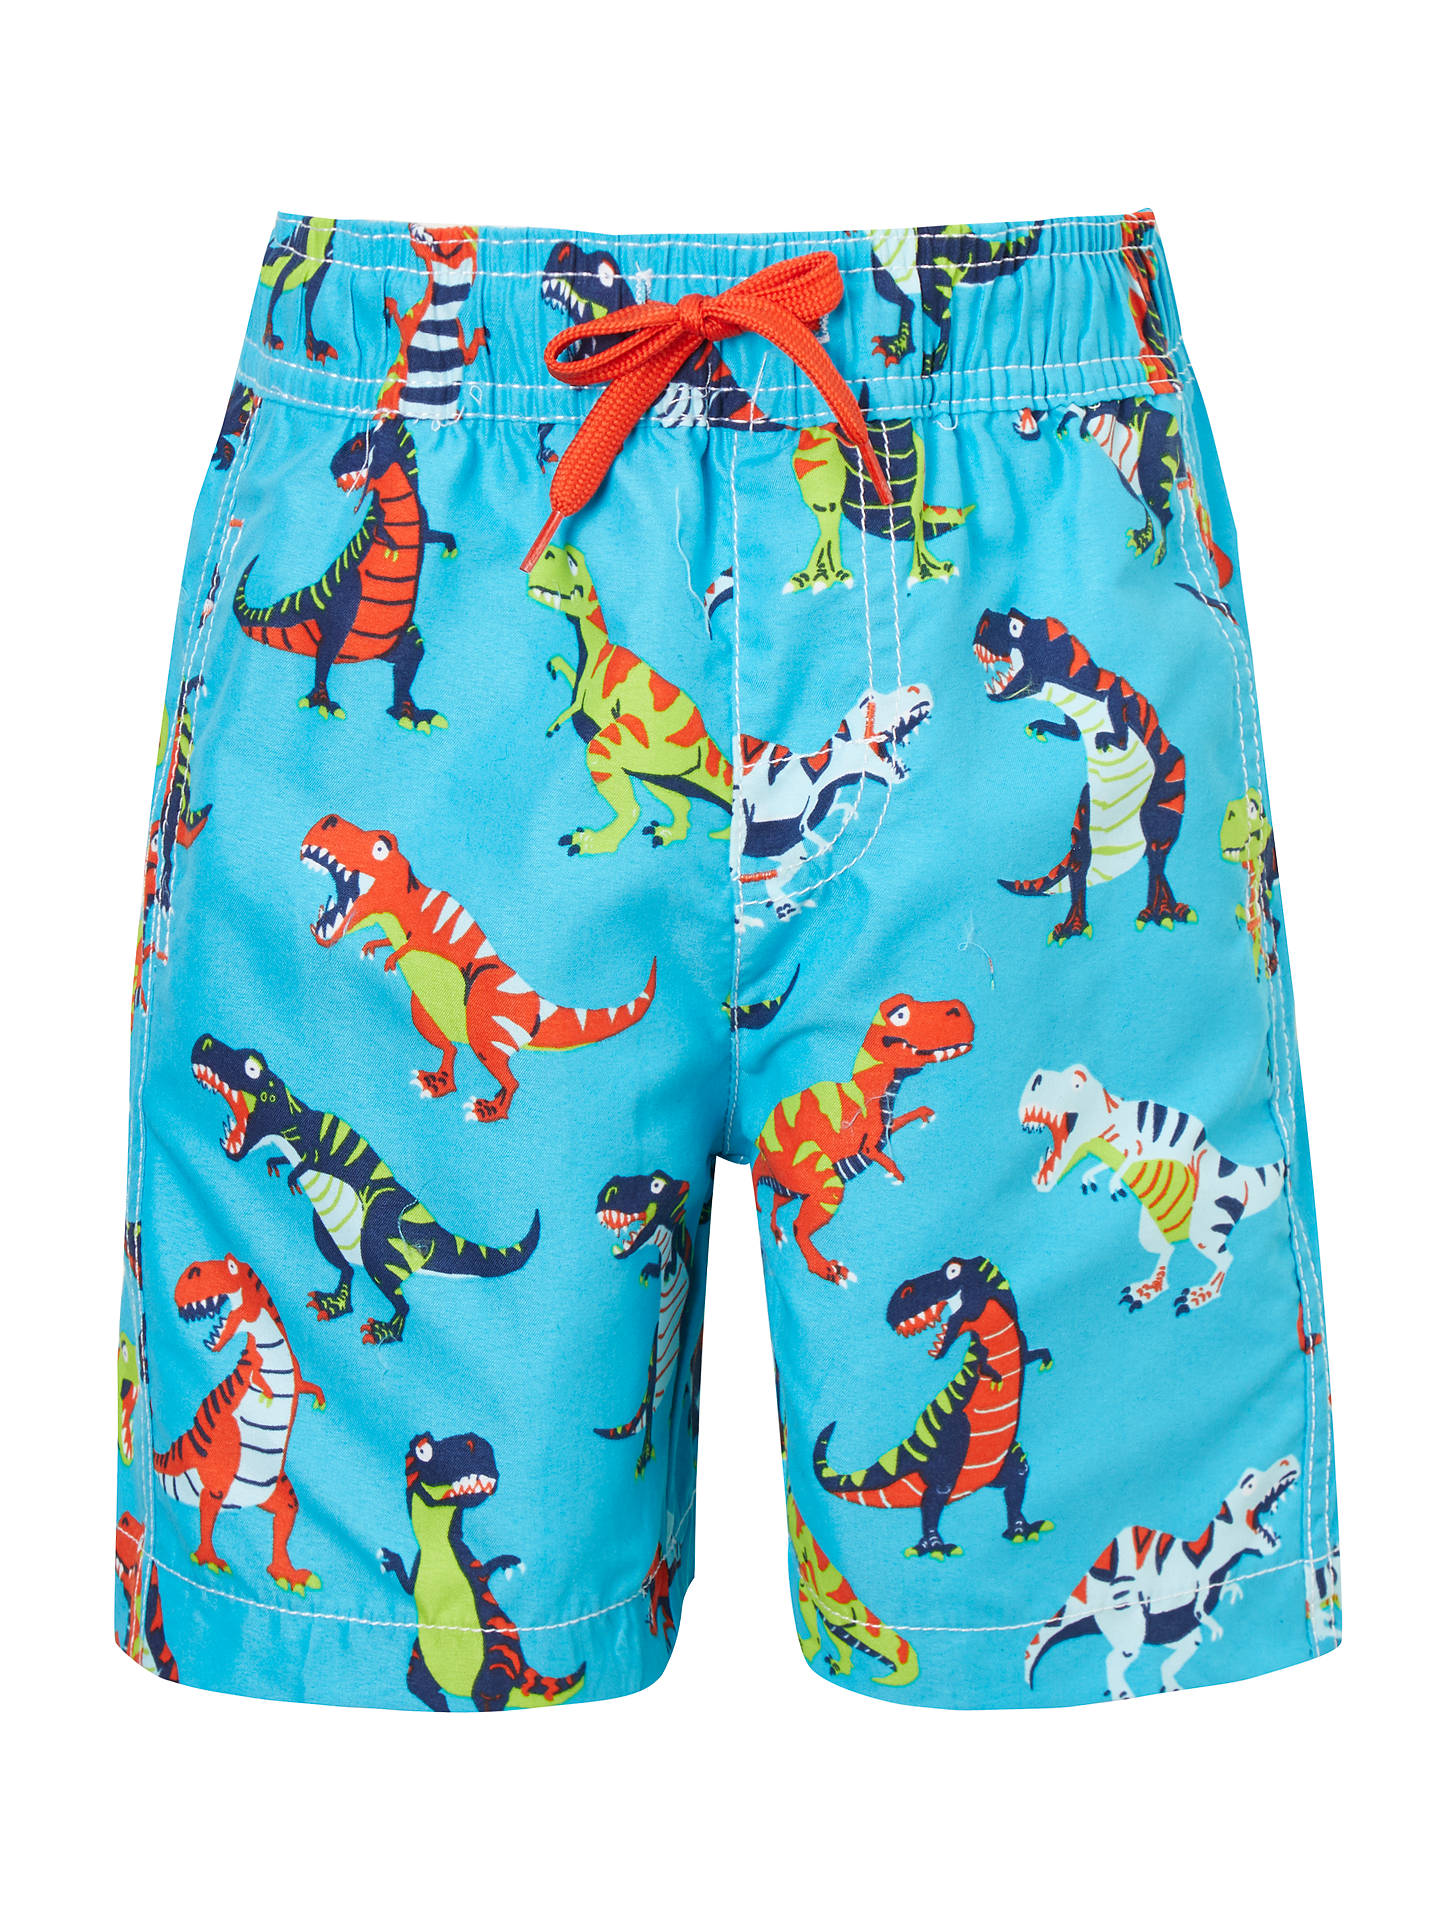 5458787a4d822 Hatley Boys' Roaring T-Rex Swim Trunks, Blue/Multi at John Lewis ...